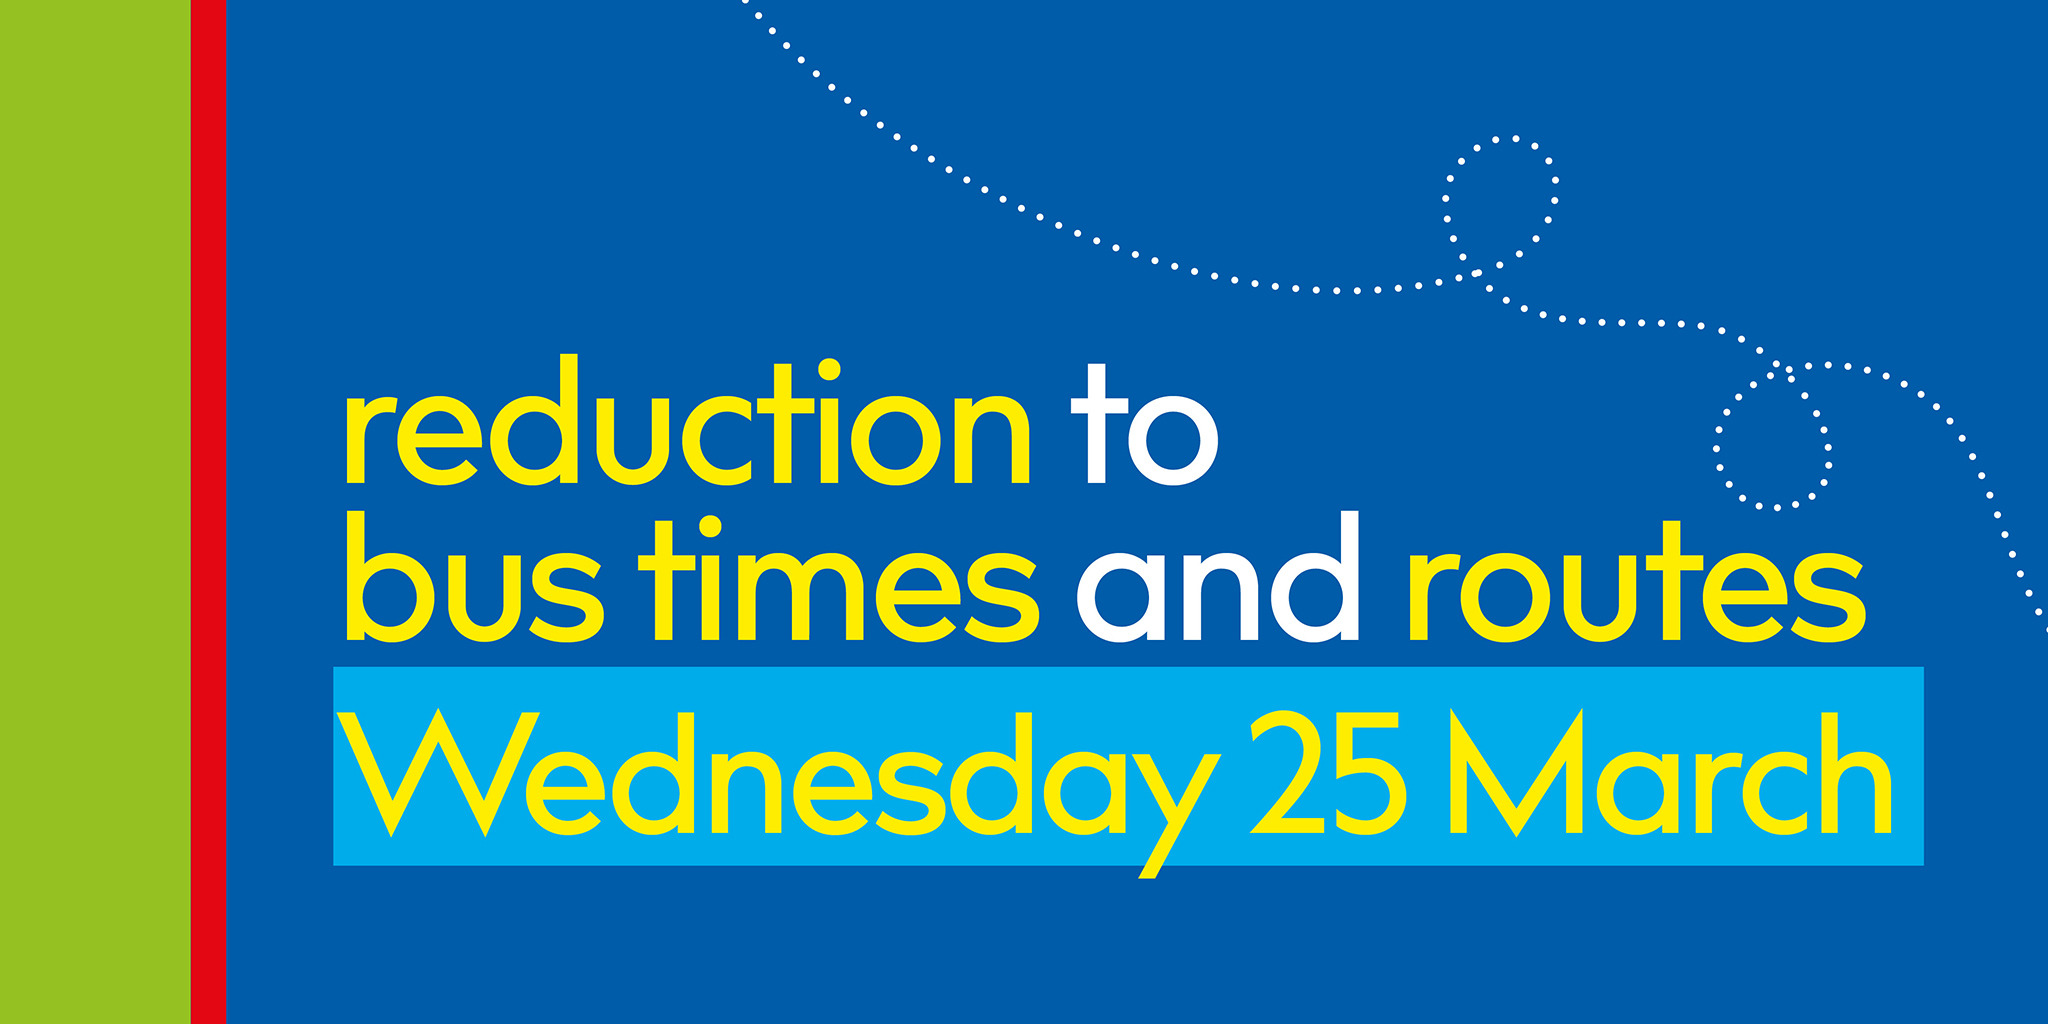 Reduction to bus times and routes from Wednesday 25 March